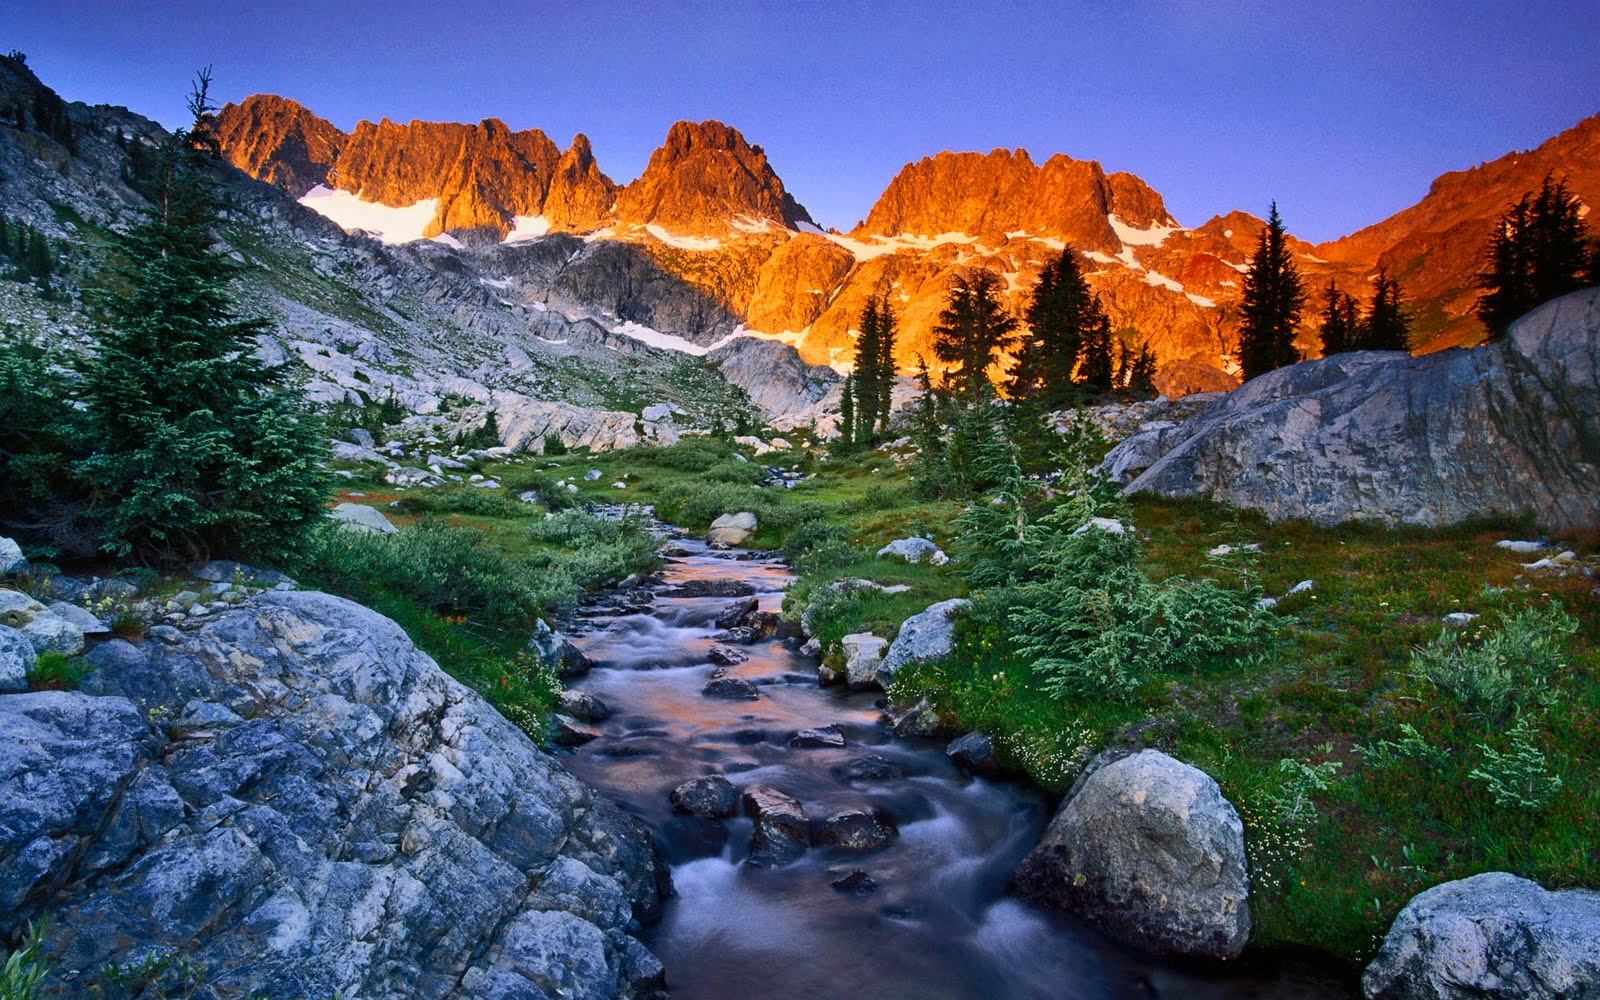 Mountain landscape 1920 x 1200 hd wallpaper - Hd wilderness wallpapers ...